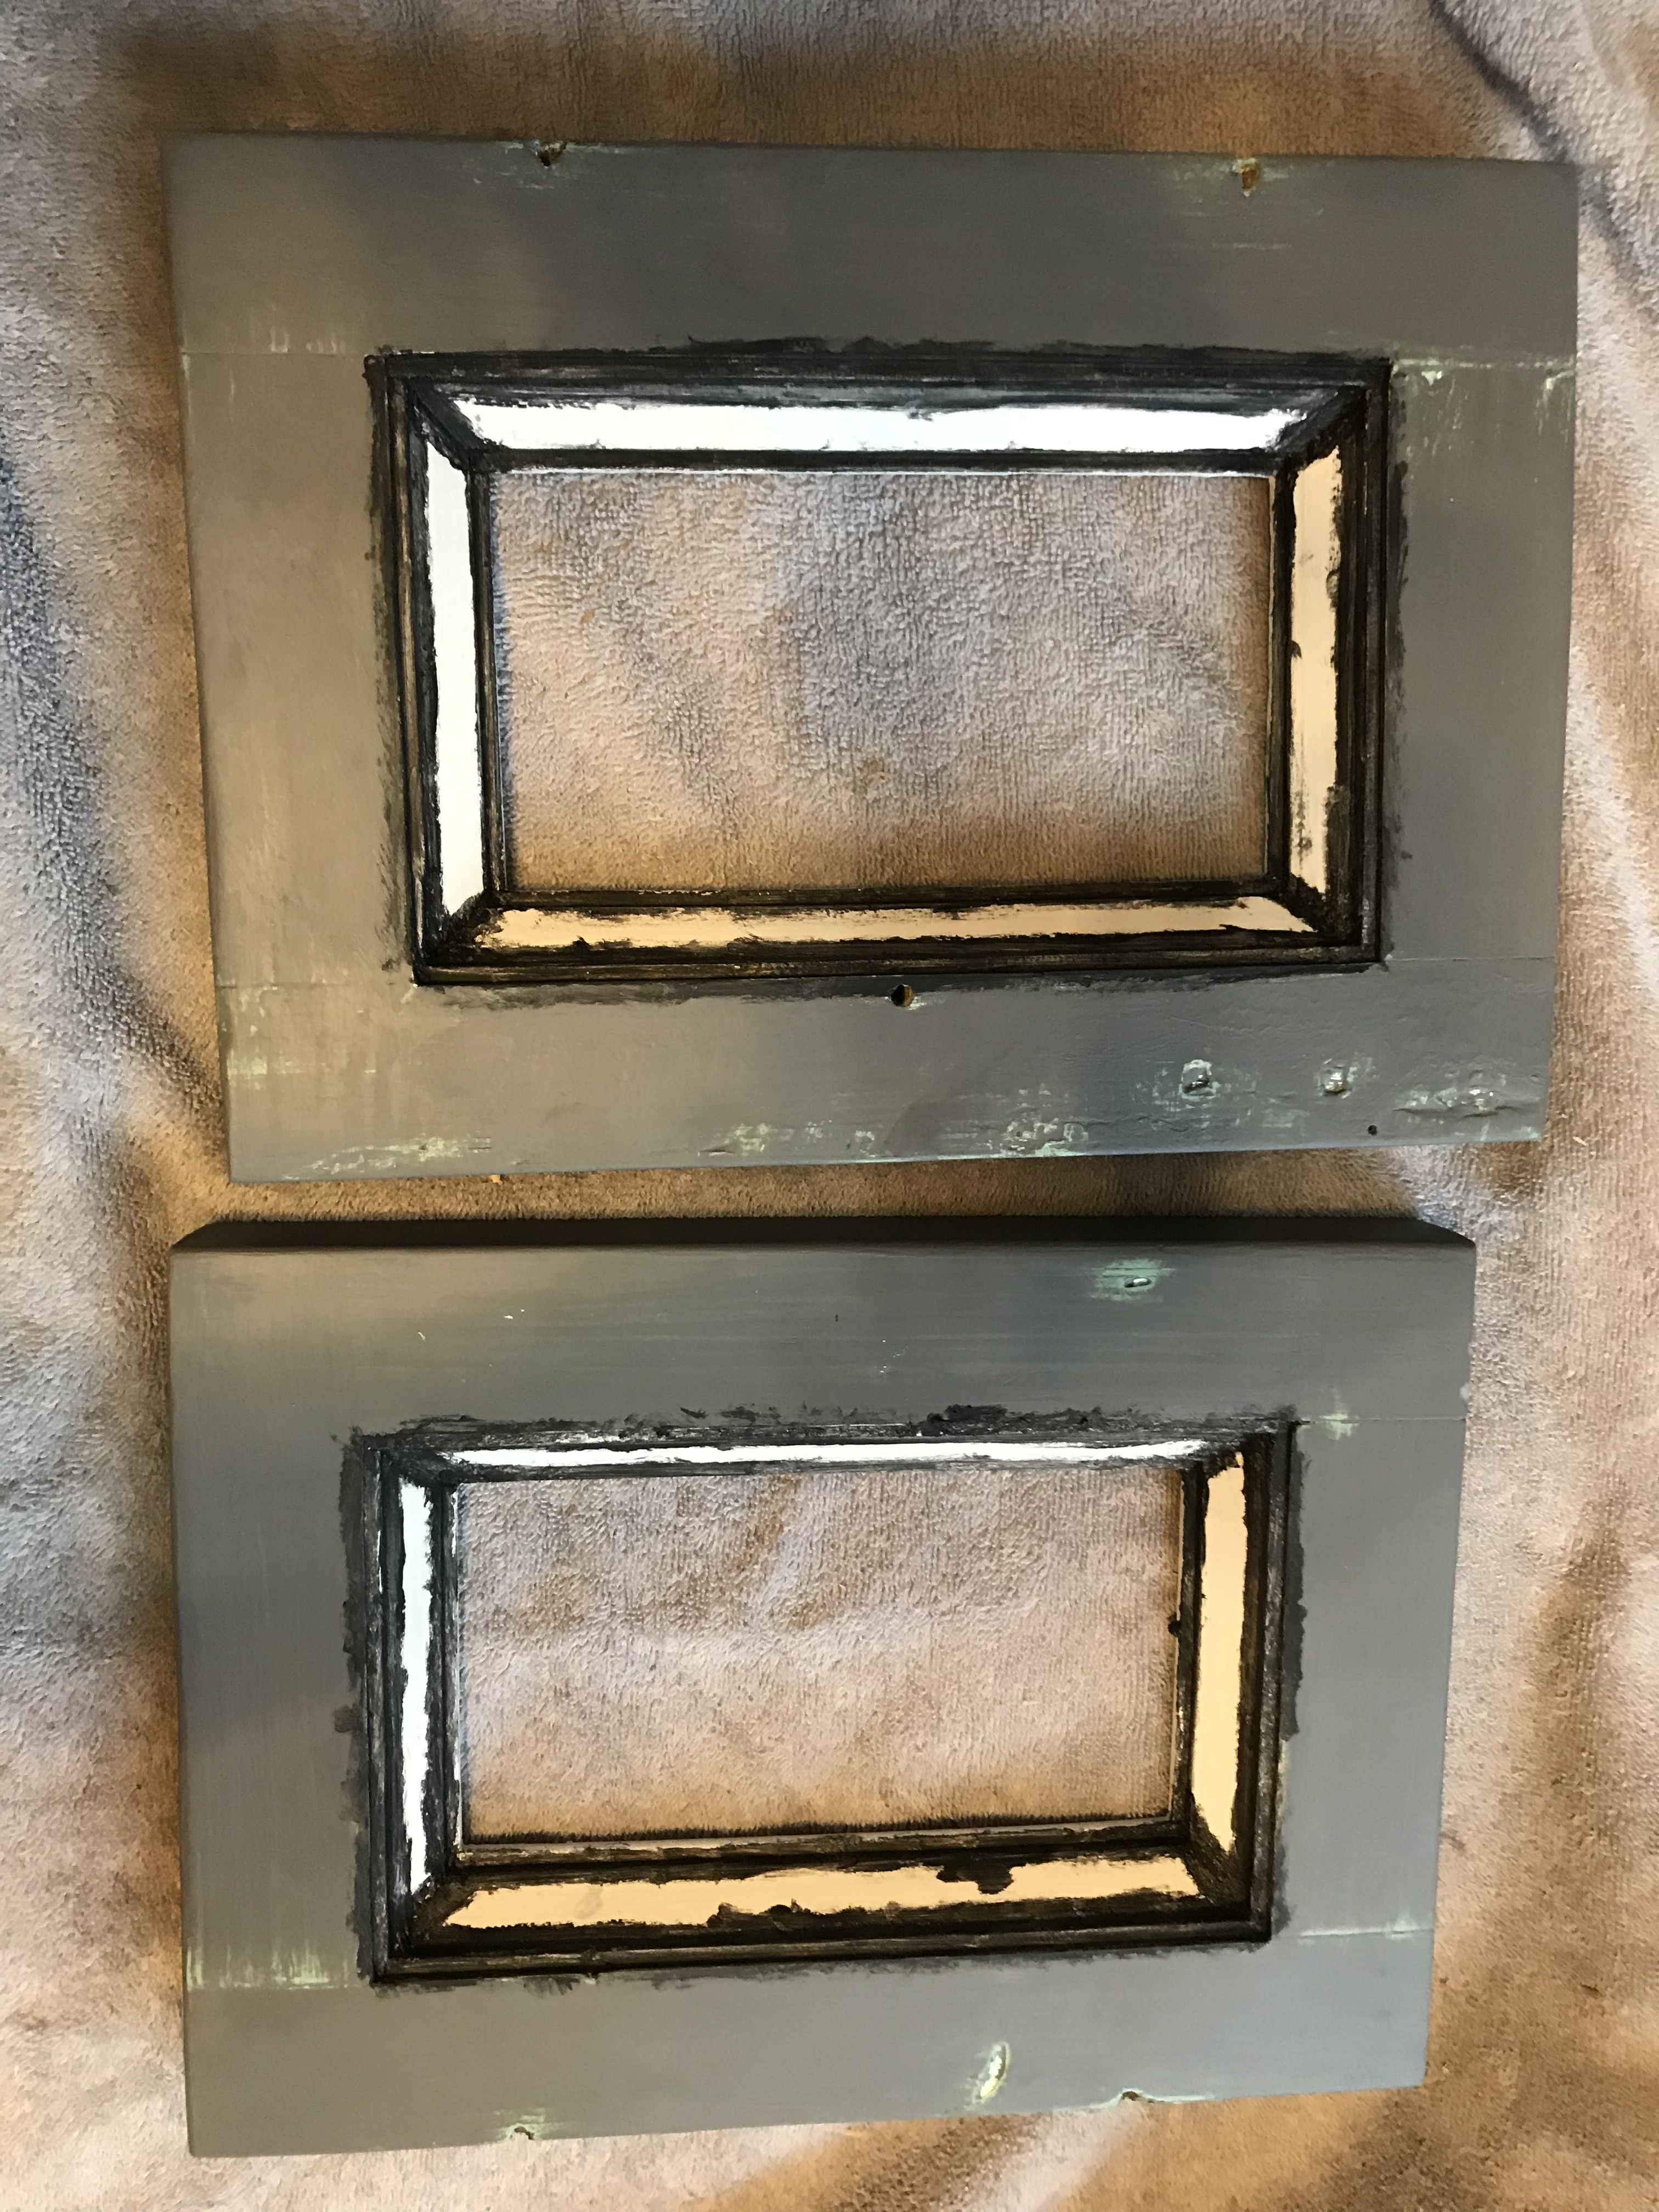 Two small dresser doors with white molding that has black wax painted on it and gray panels with a mint green colored distressed through the gray paint